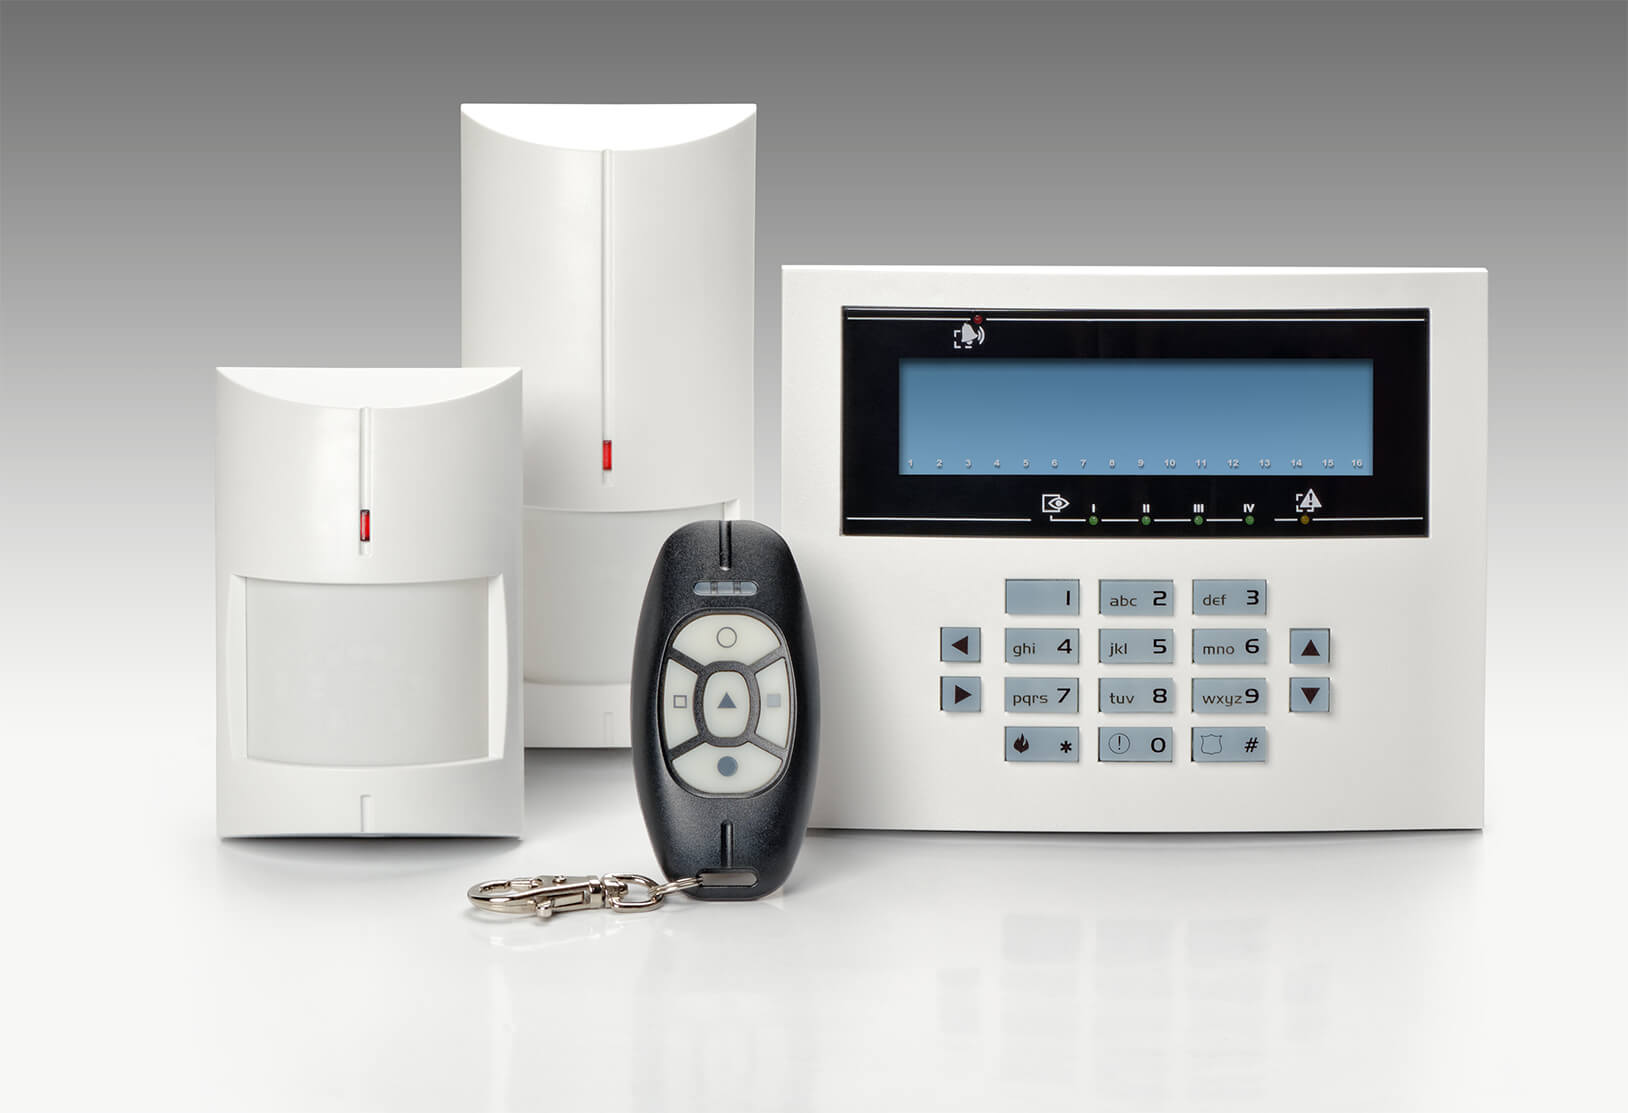 Burglar Alarms Repair in Clapham Junction SW11 - Local Clapham Junction SW11 alarm engineers.Call 02078872244 - See cost/price for burglar alarm repair and book your alarm engineer. No Hidden charges,No Contracts, Book as you need.Engineers on demand.All alarm makes repaired.Same day service ability.